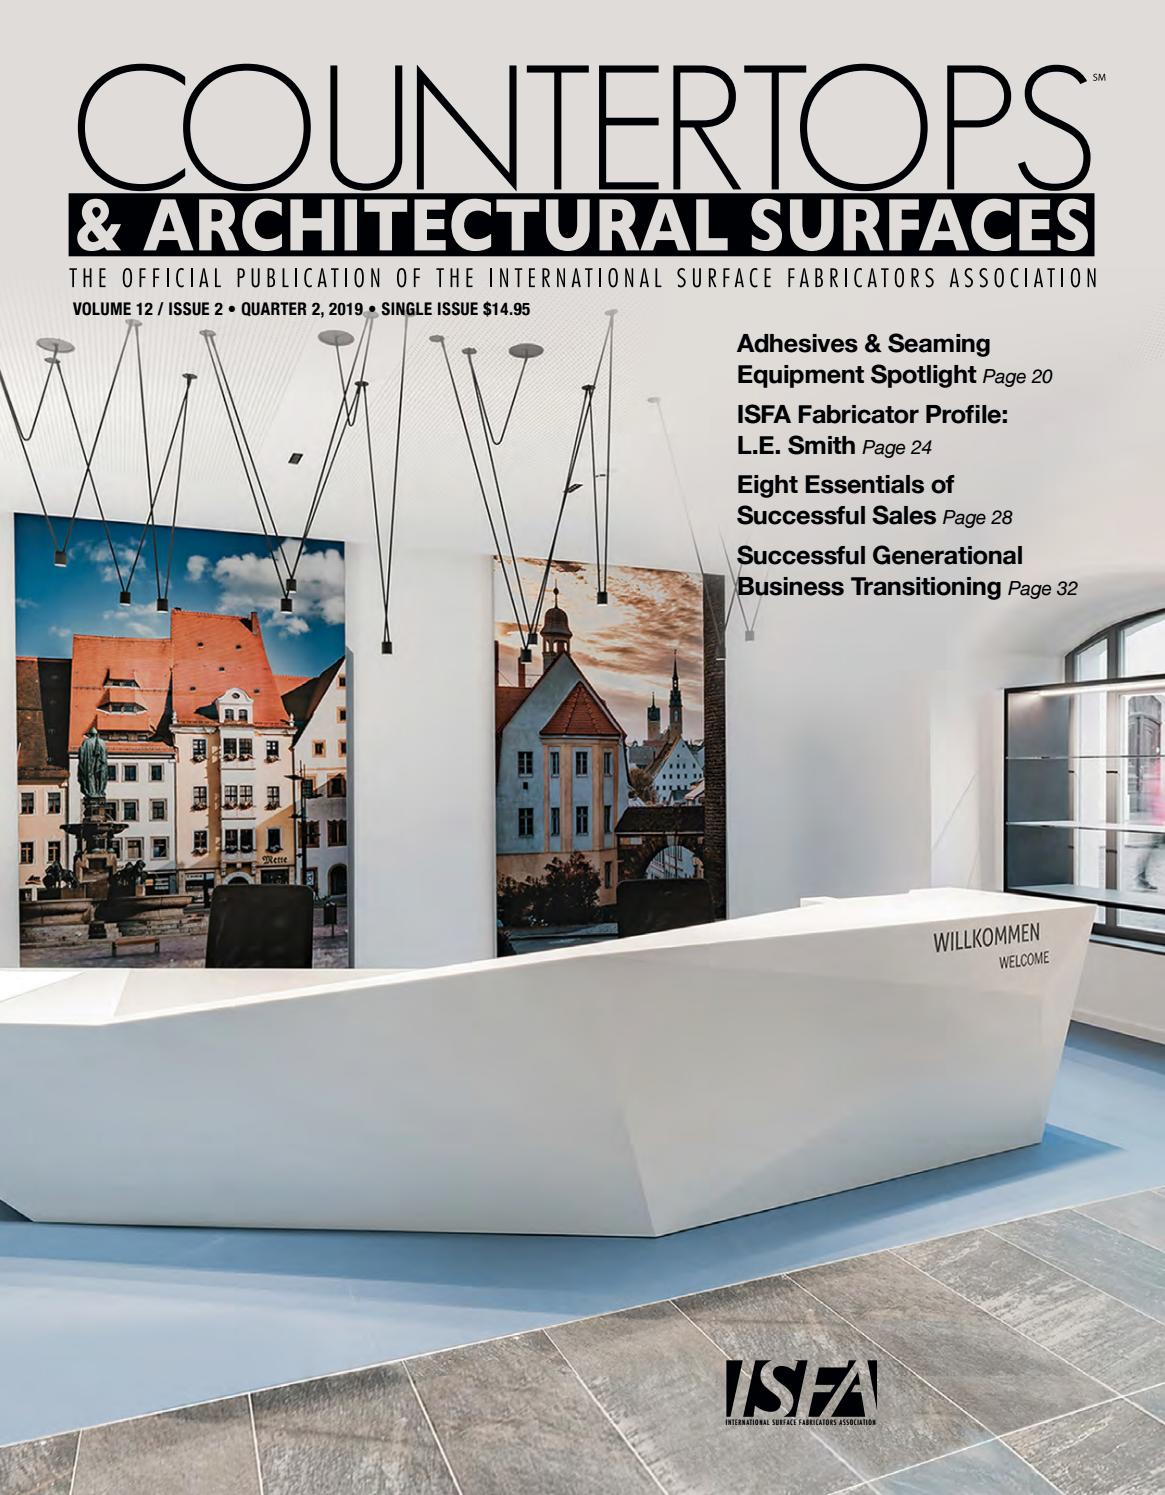 Isfa S Countertops Architectural Surfaces Vol 12 Issue 2 Q2 2019 By Isfa Issuu